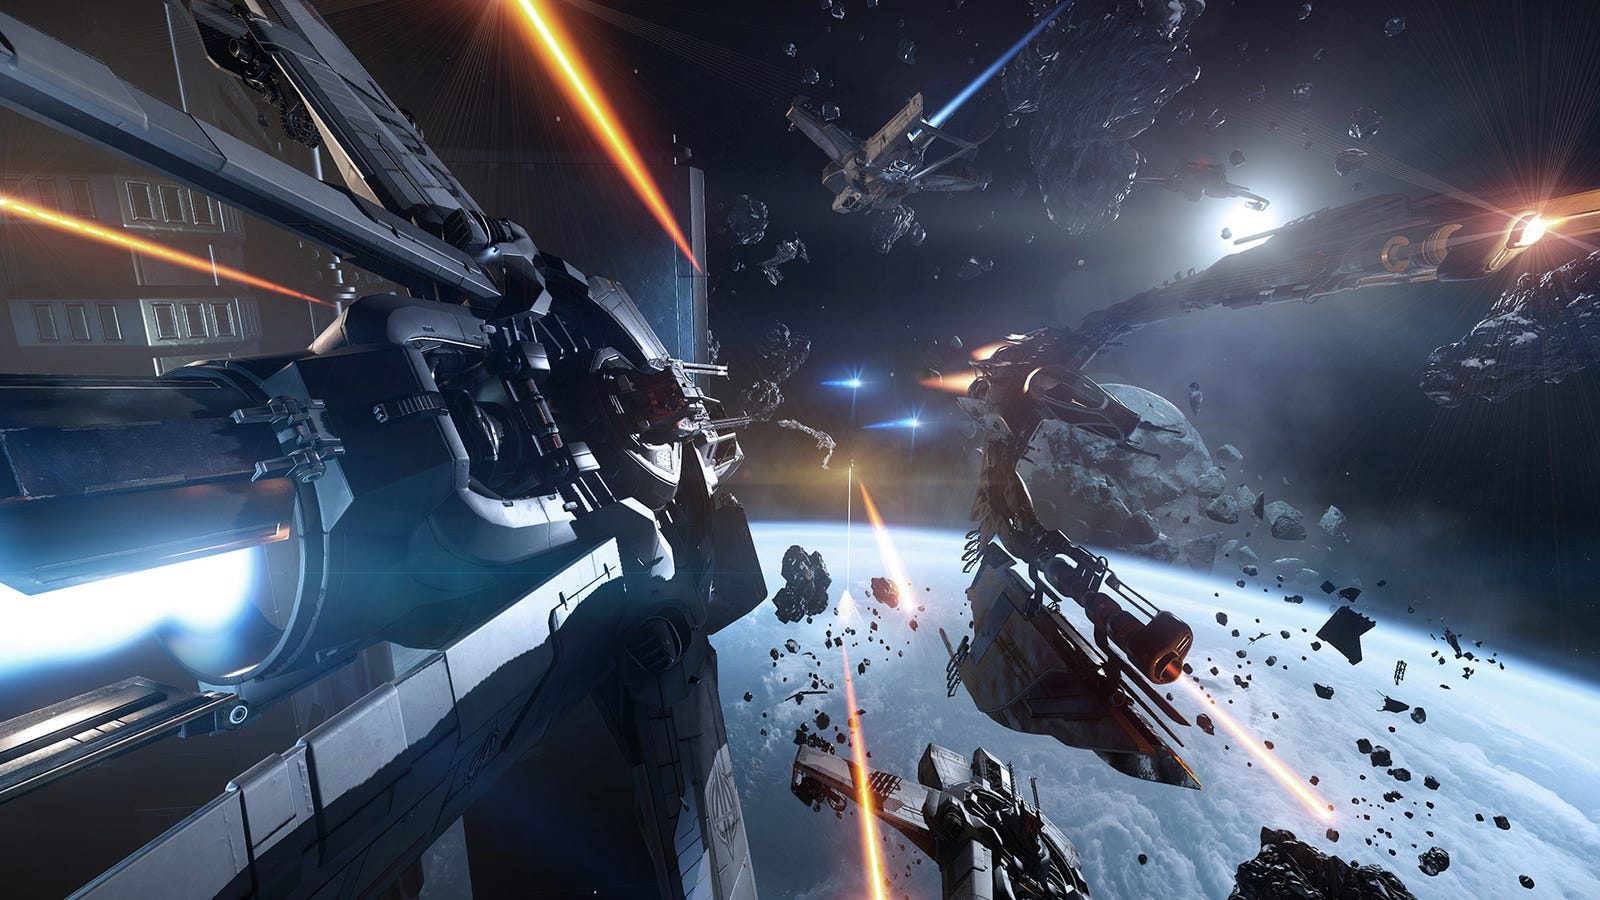 Crytek Sues Star CitizenMakers For Breaching Contract